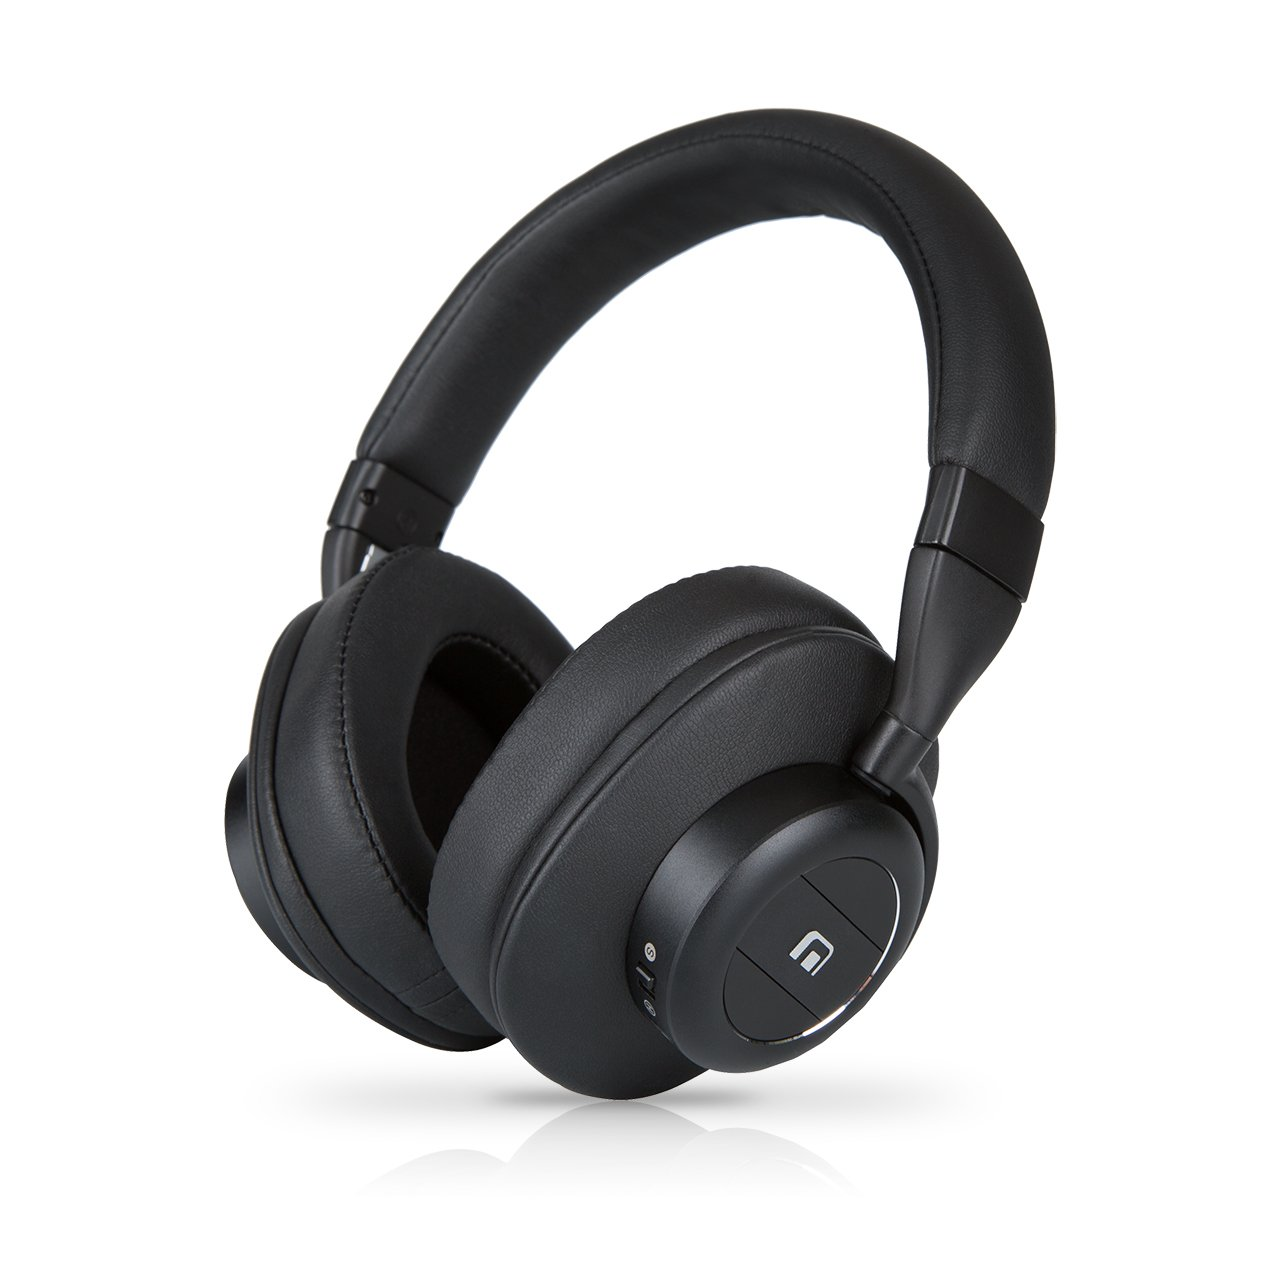 Culture V1 Upgraded BT 5.0 Wireless, Active Noise Canceling Headphones with Auto Pause Play Sensors, Swipe Controls, Quick Attention Ambient Mode, and Low Latency Tech for Wireless Audio Video Sync